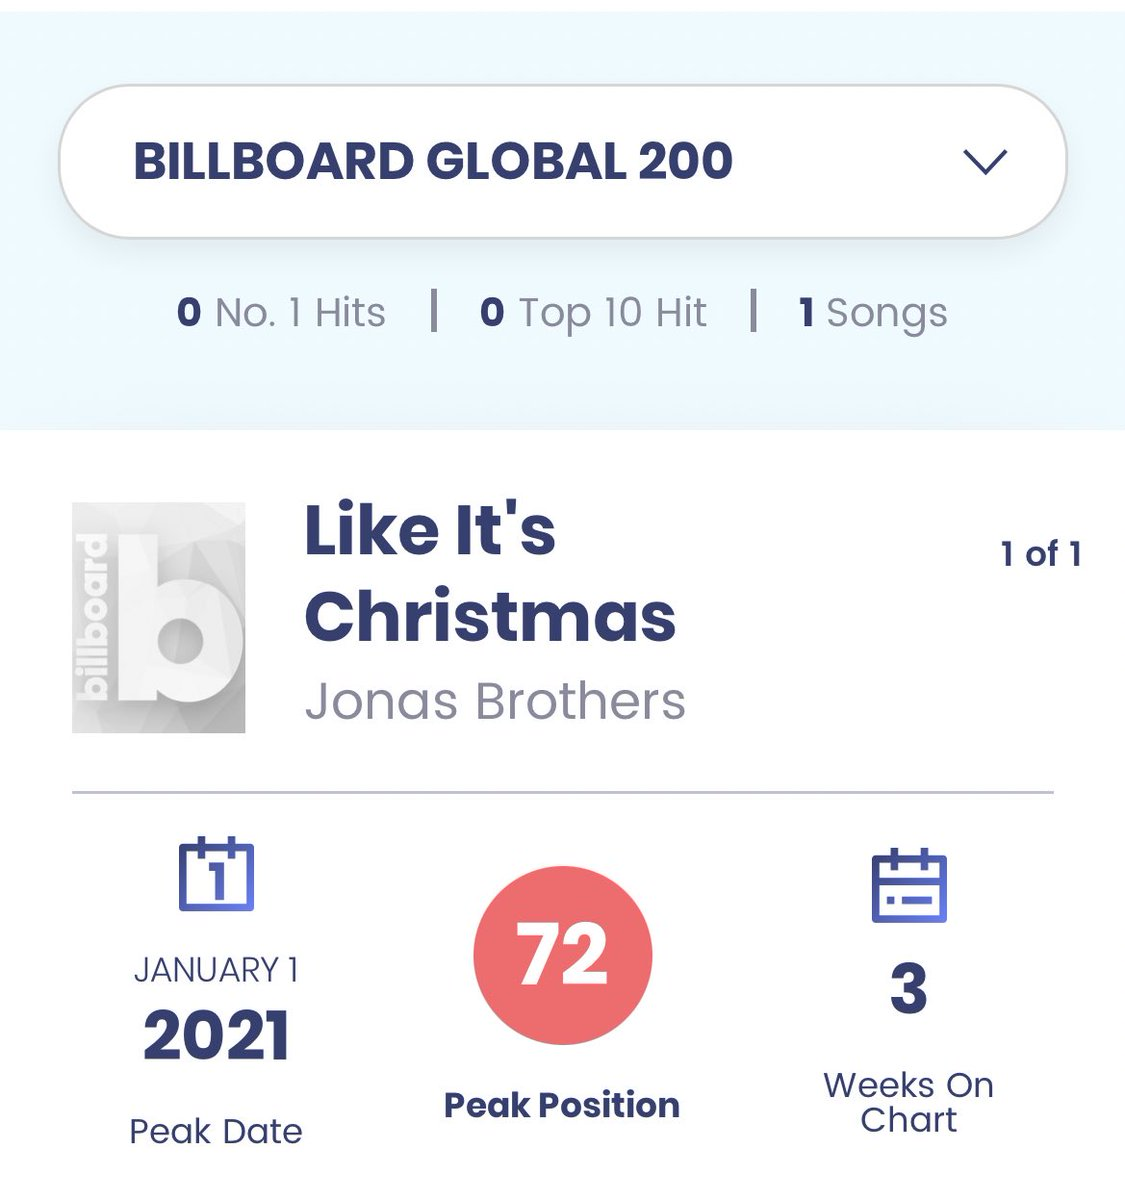 Christmas season's weeks ago but I think we haven't celebrated yet some chart accomplishments of the 2019 song #LikeItsChristmas during the 2020 holidays. Here's a thread ✨🎅  • 1st entry of @jonasbrothers on the new Global 200 chart, peaked at #72 • Global excl. US #180